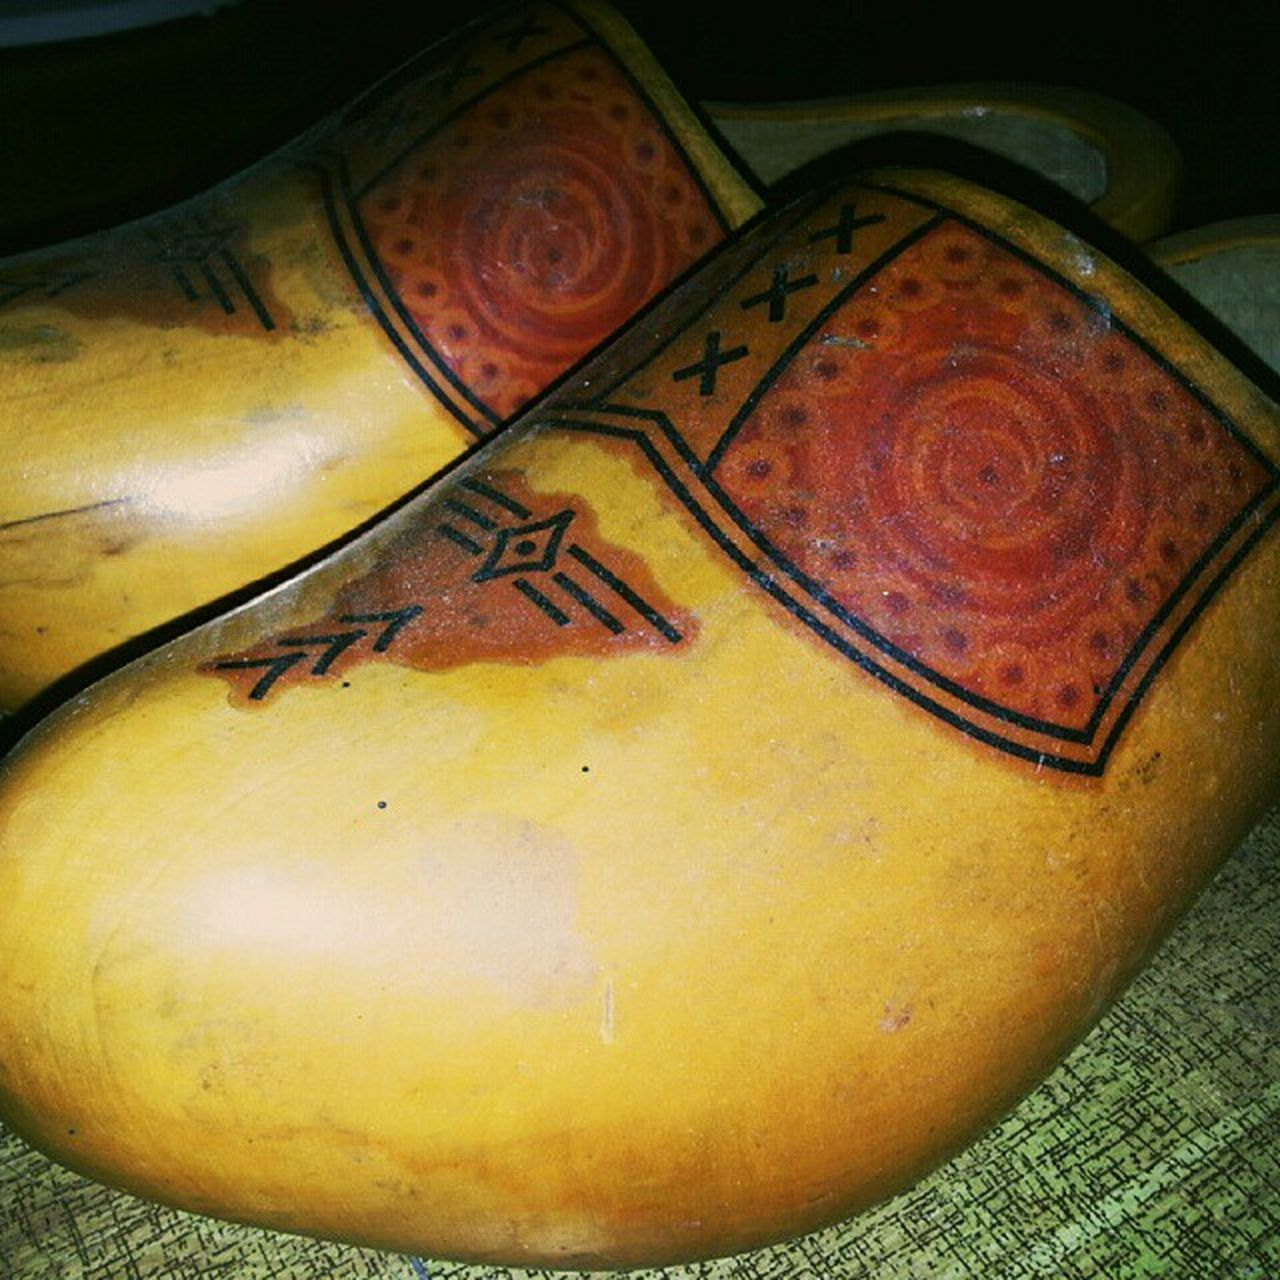 A dream come true! Took a shot of this real clogs shoes from Holland. Clogs Fromholland Holland Hollandshoes woodenshoes history historyofshoes dreamsdocometrue